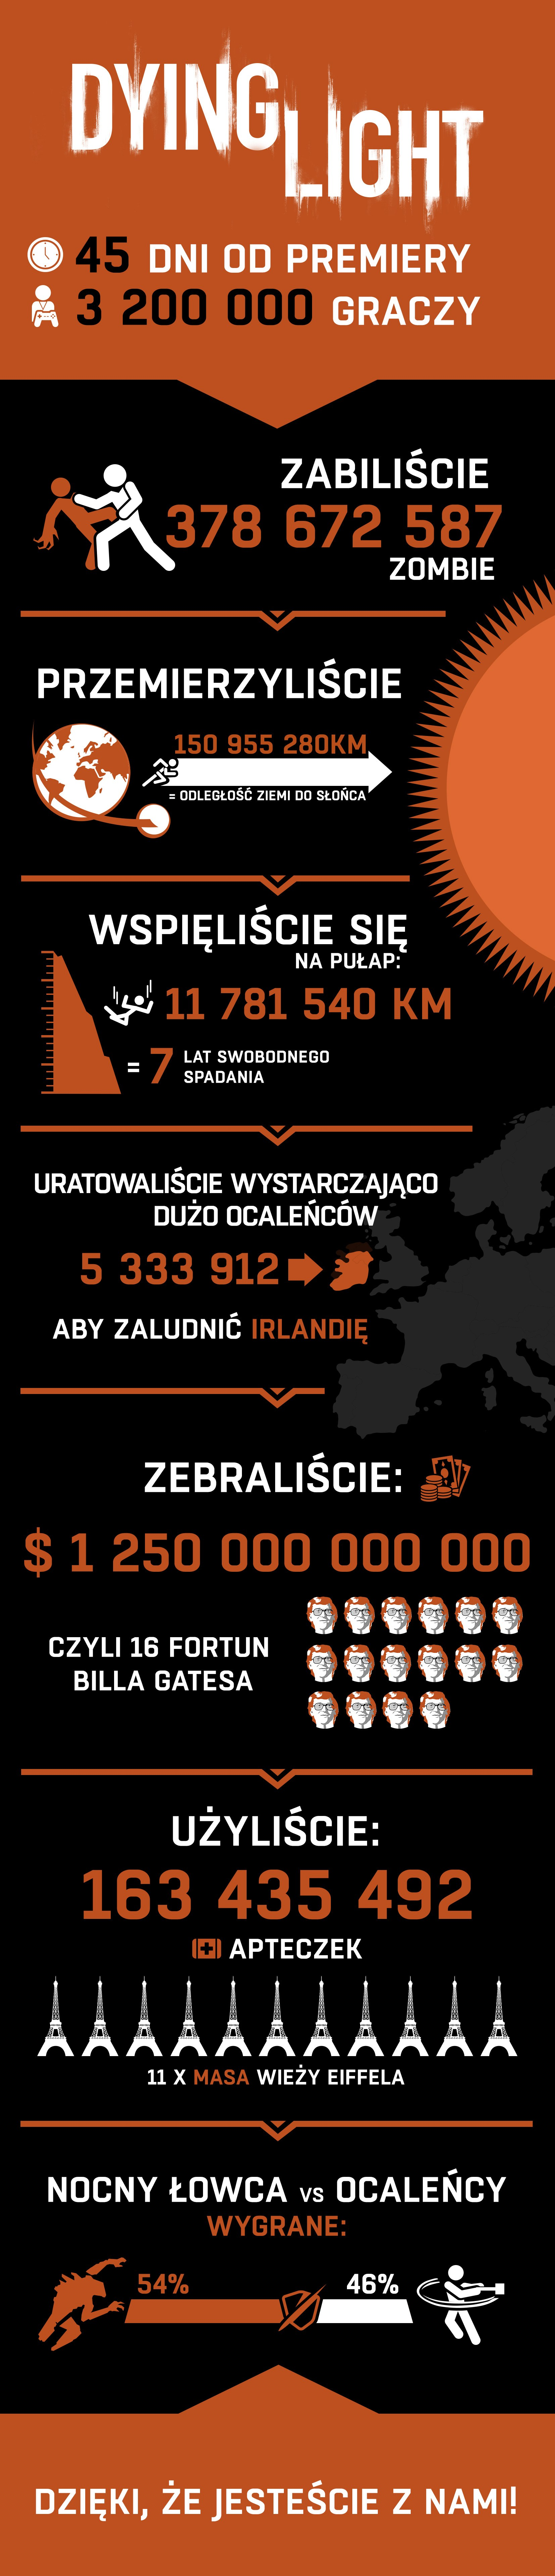 DL-infographic-pl